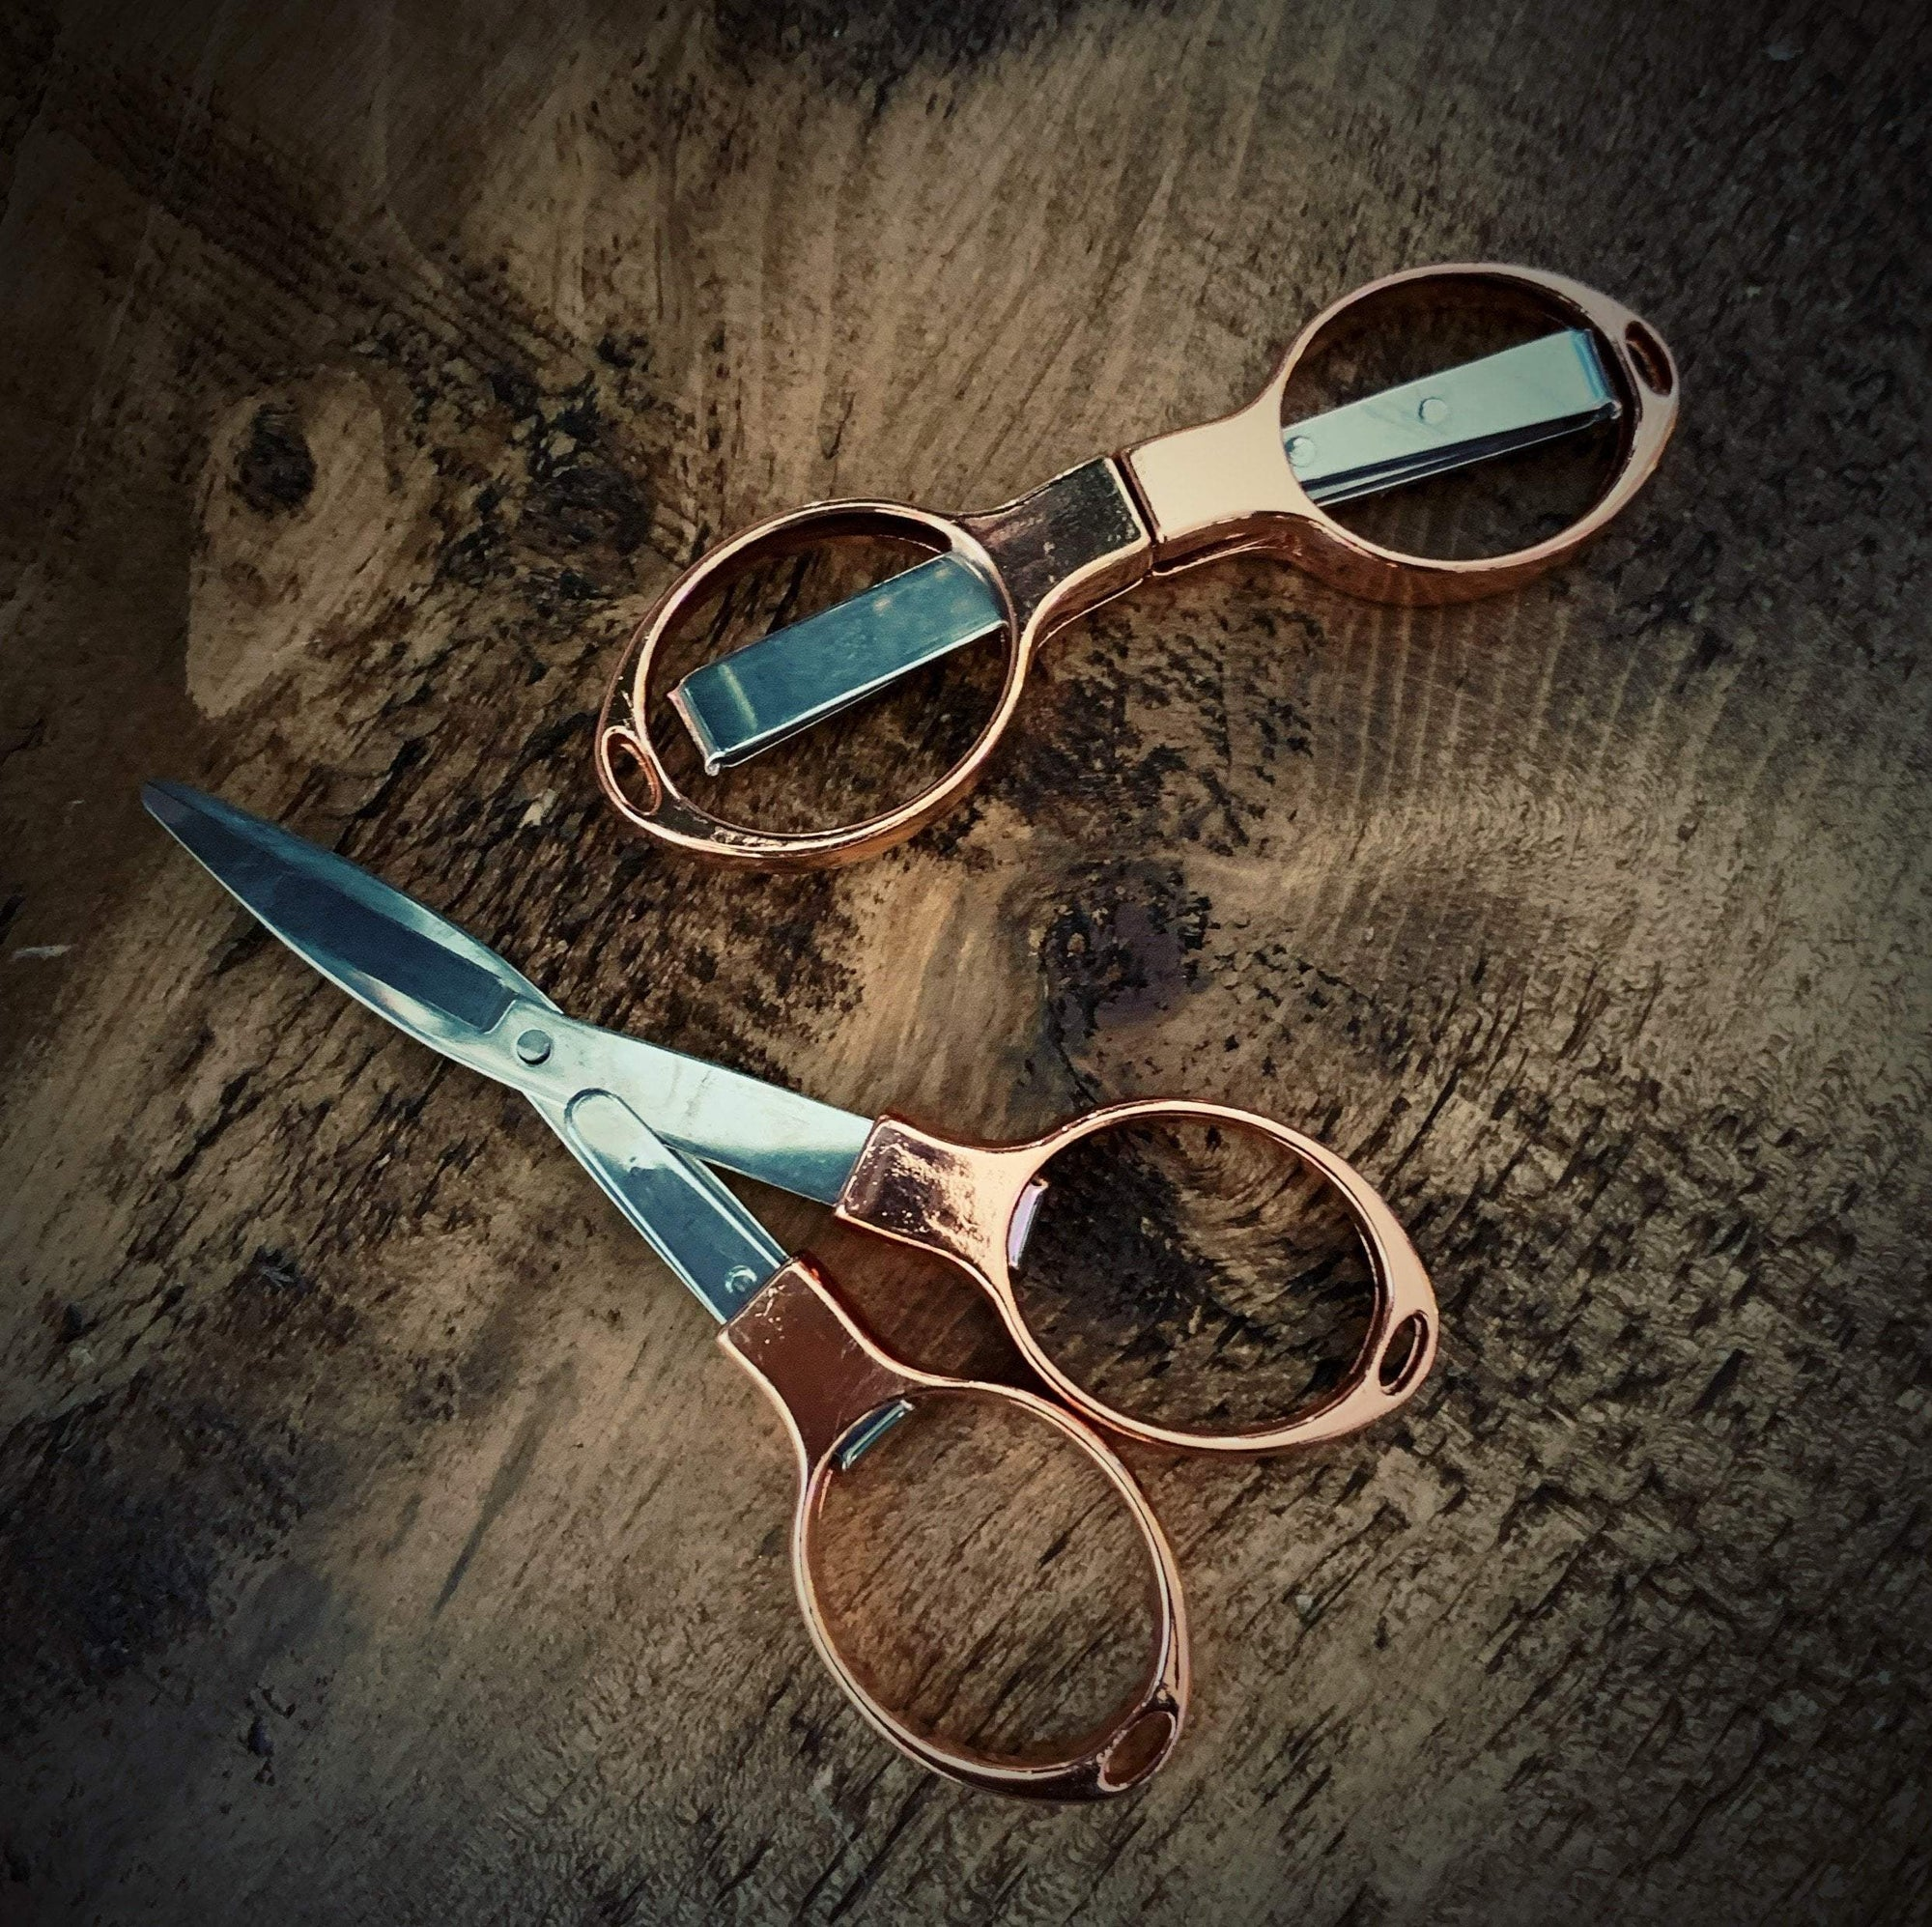 Rose Gold Folding Scissors tribeyarns Scissors & Snips